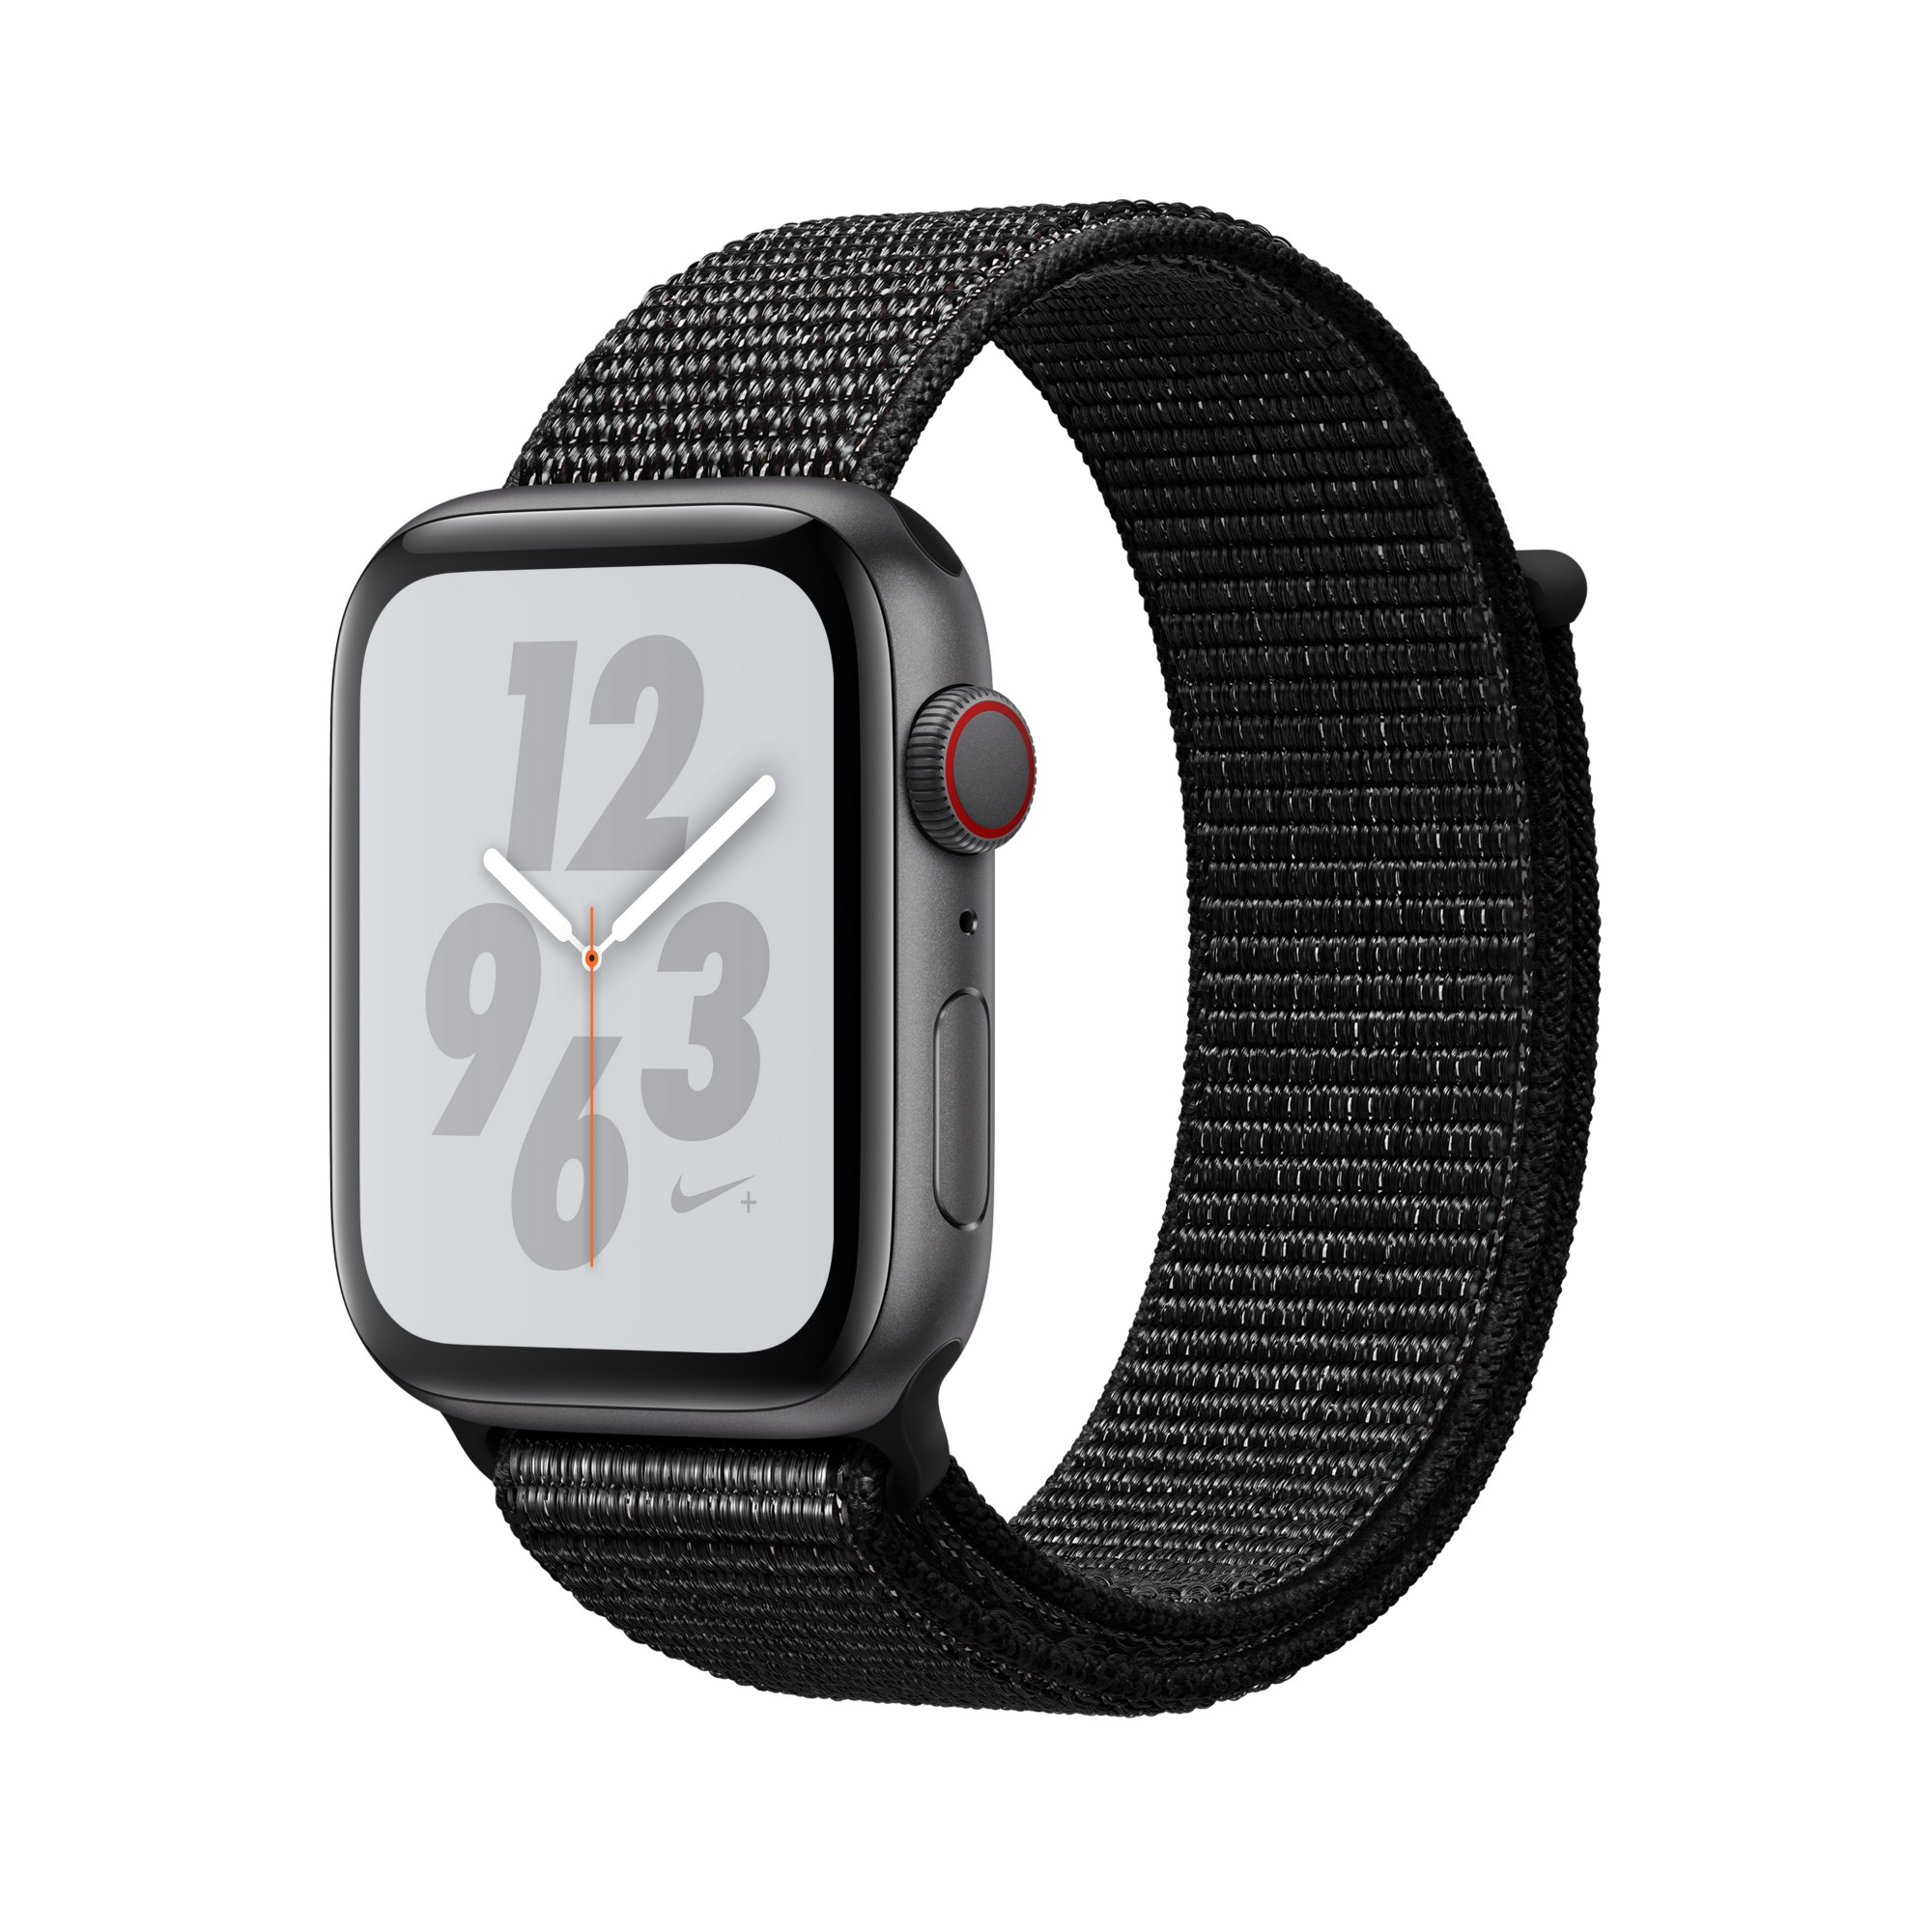 Apple Watch Nike+ Series 4 smartwatch Grey OLED Cellular GPS (satellite)